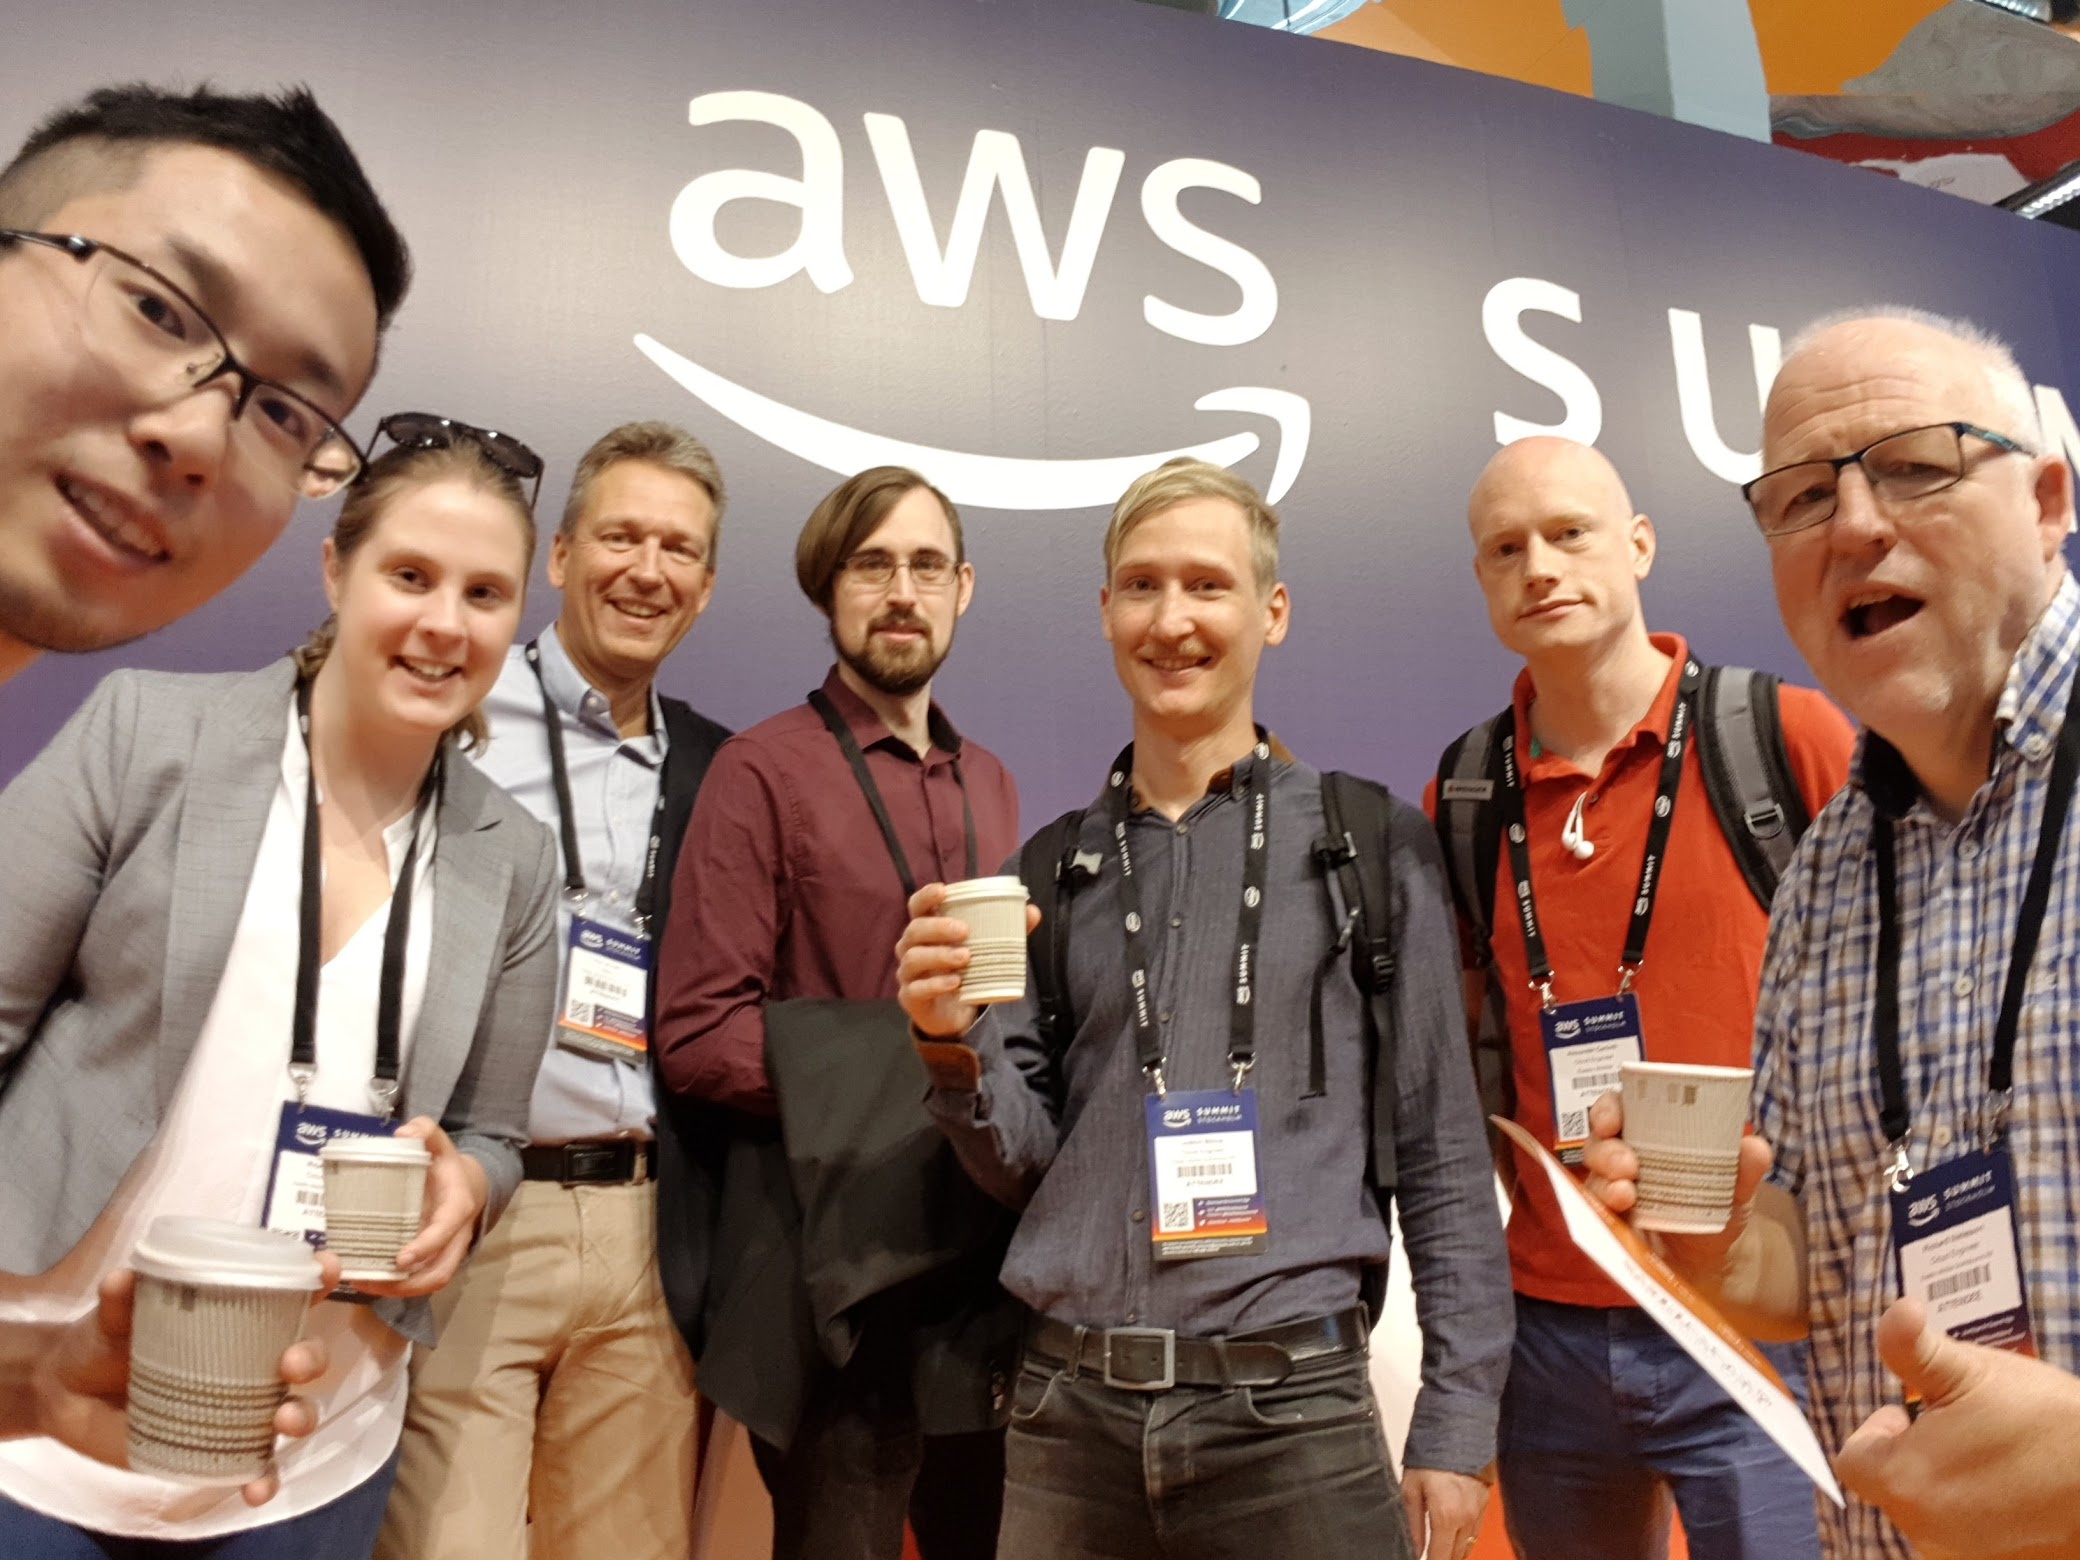 aws-summit-2018.jpg